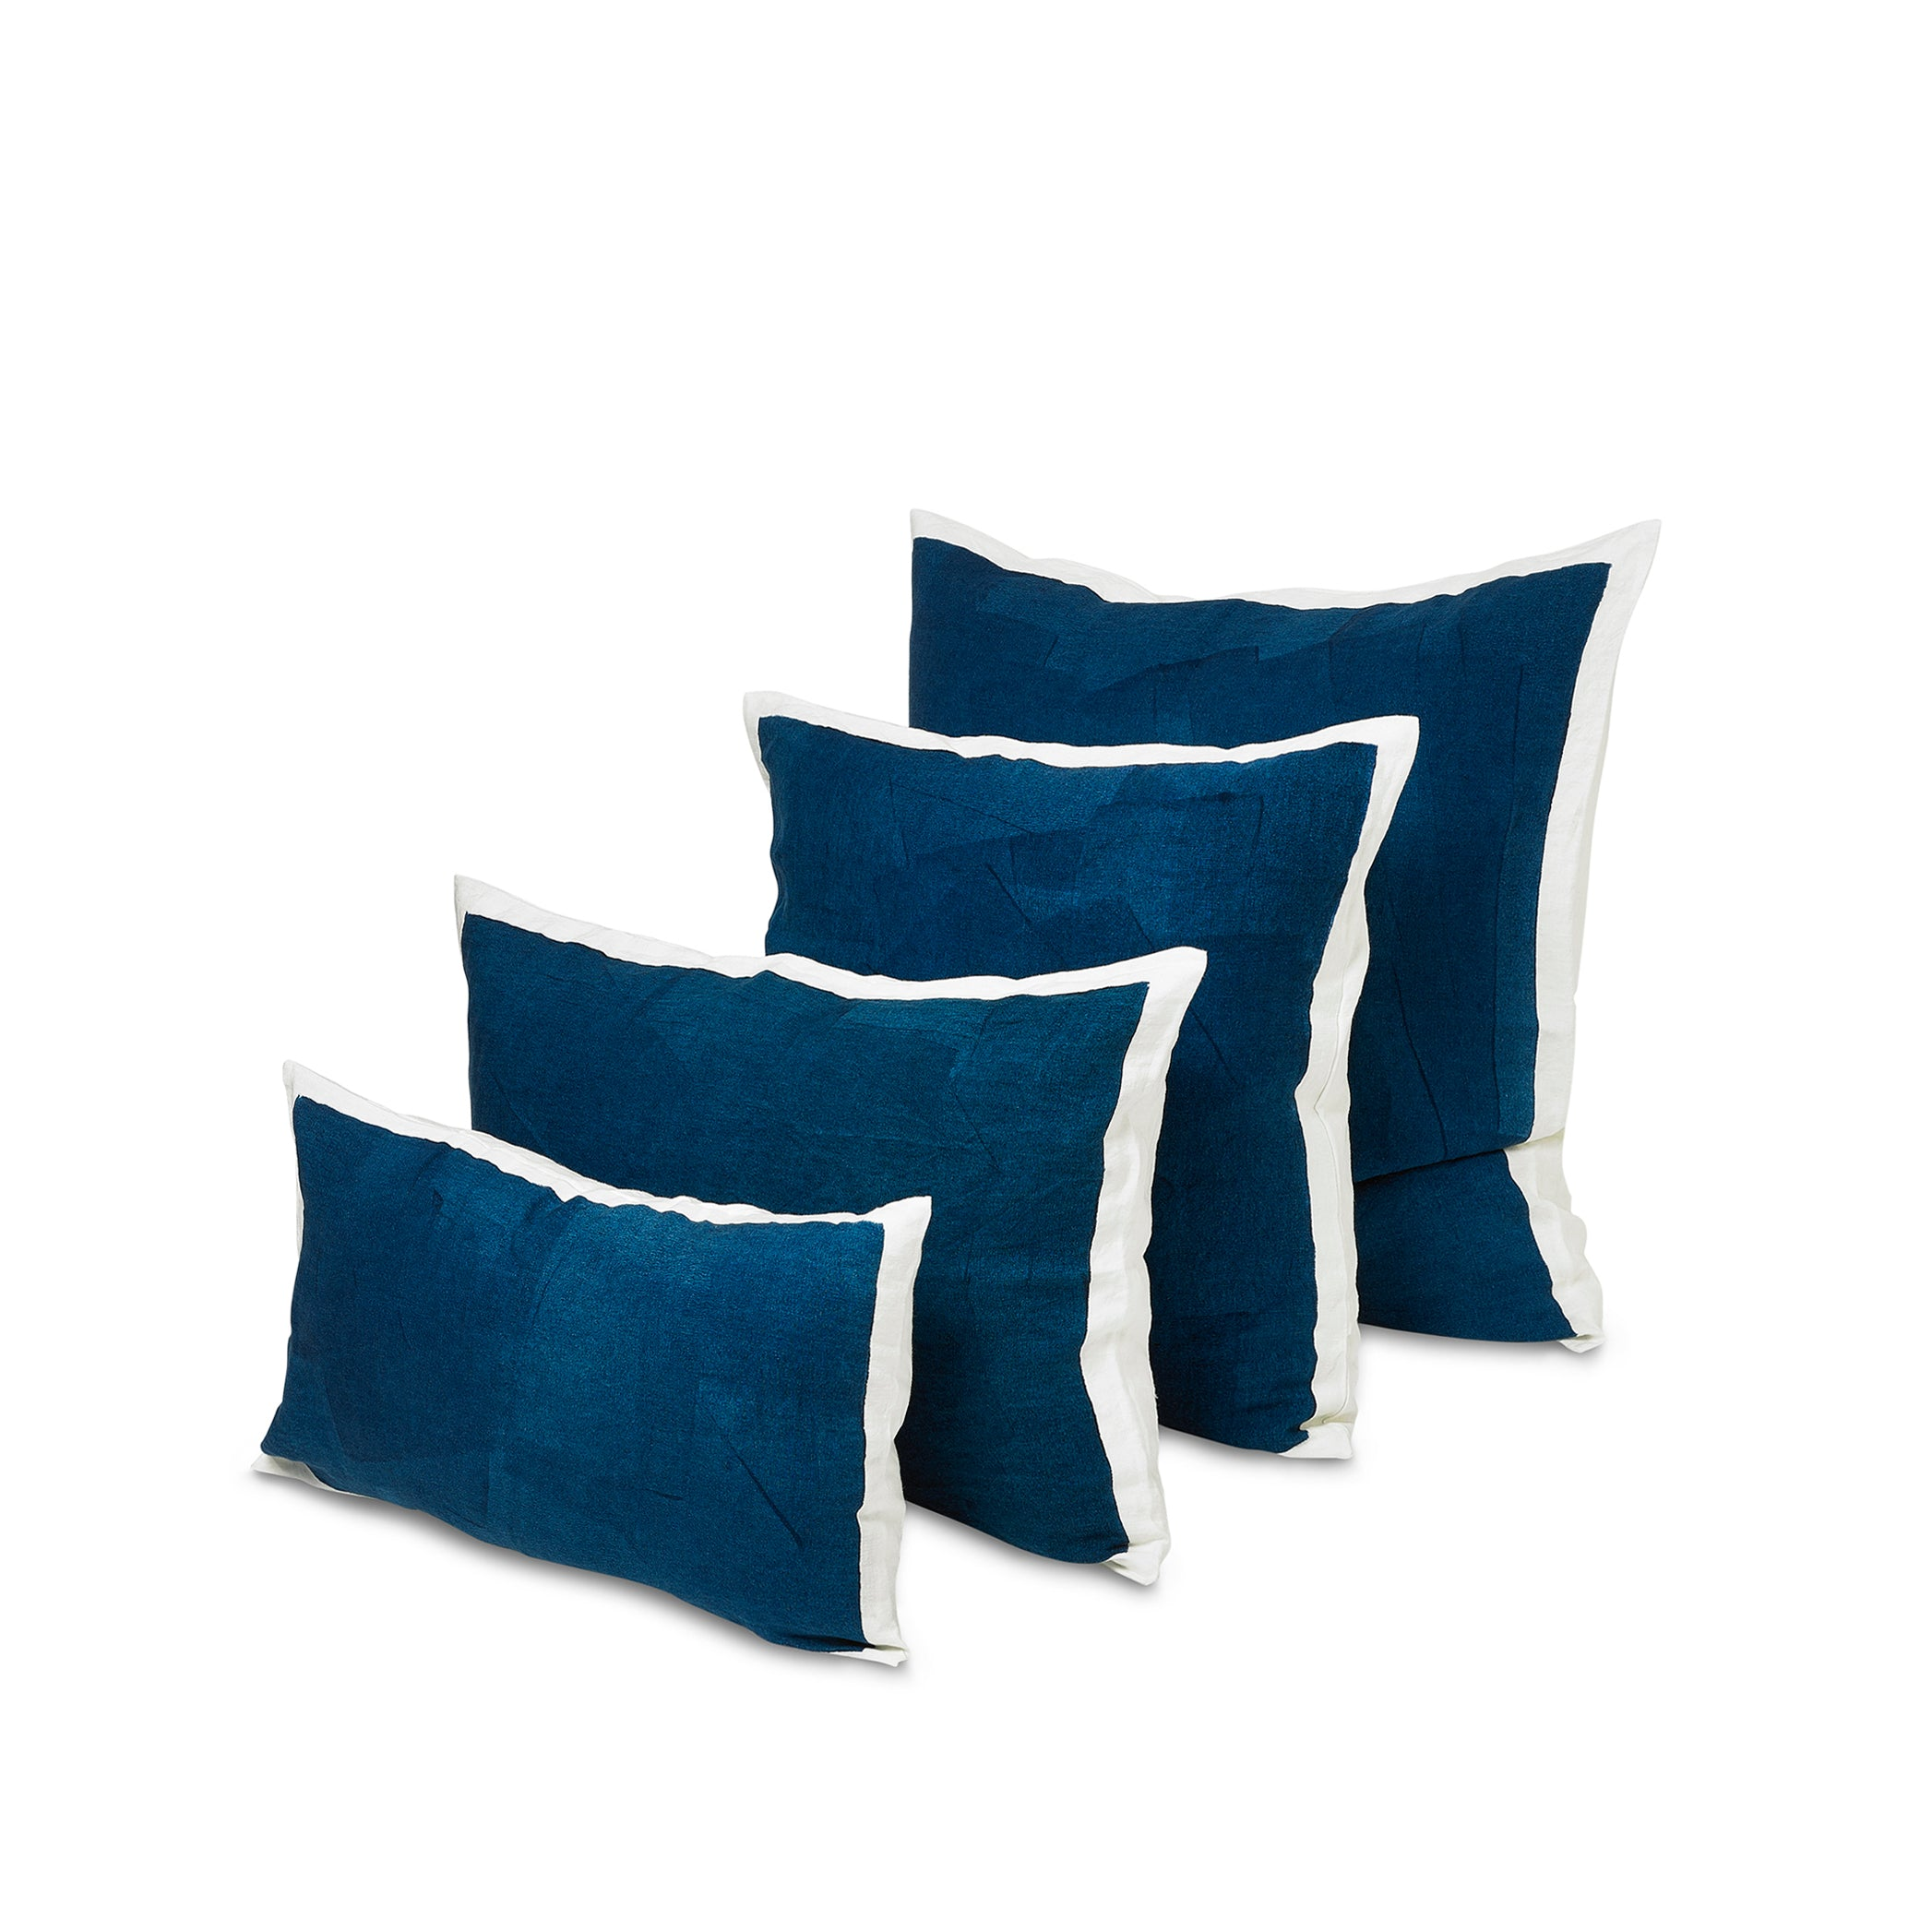 Hand Painted Linen Cushion Cover in Midnight Blue, 60cm x 40cm